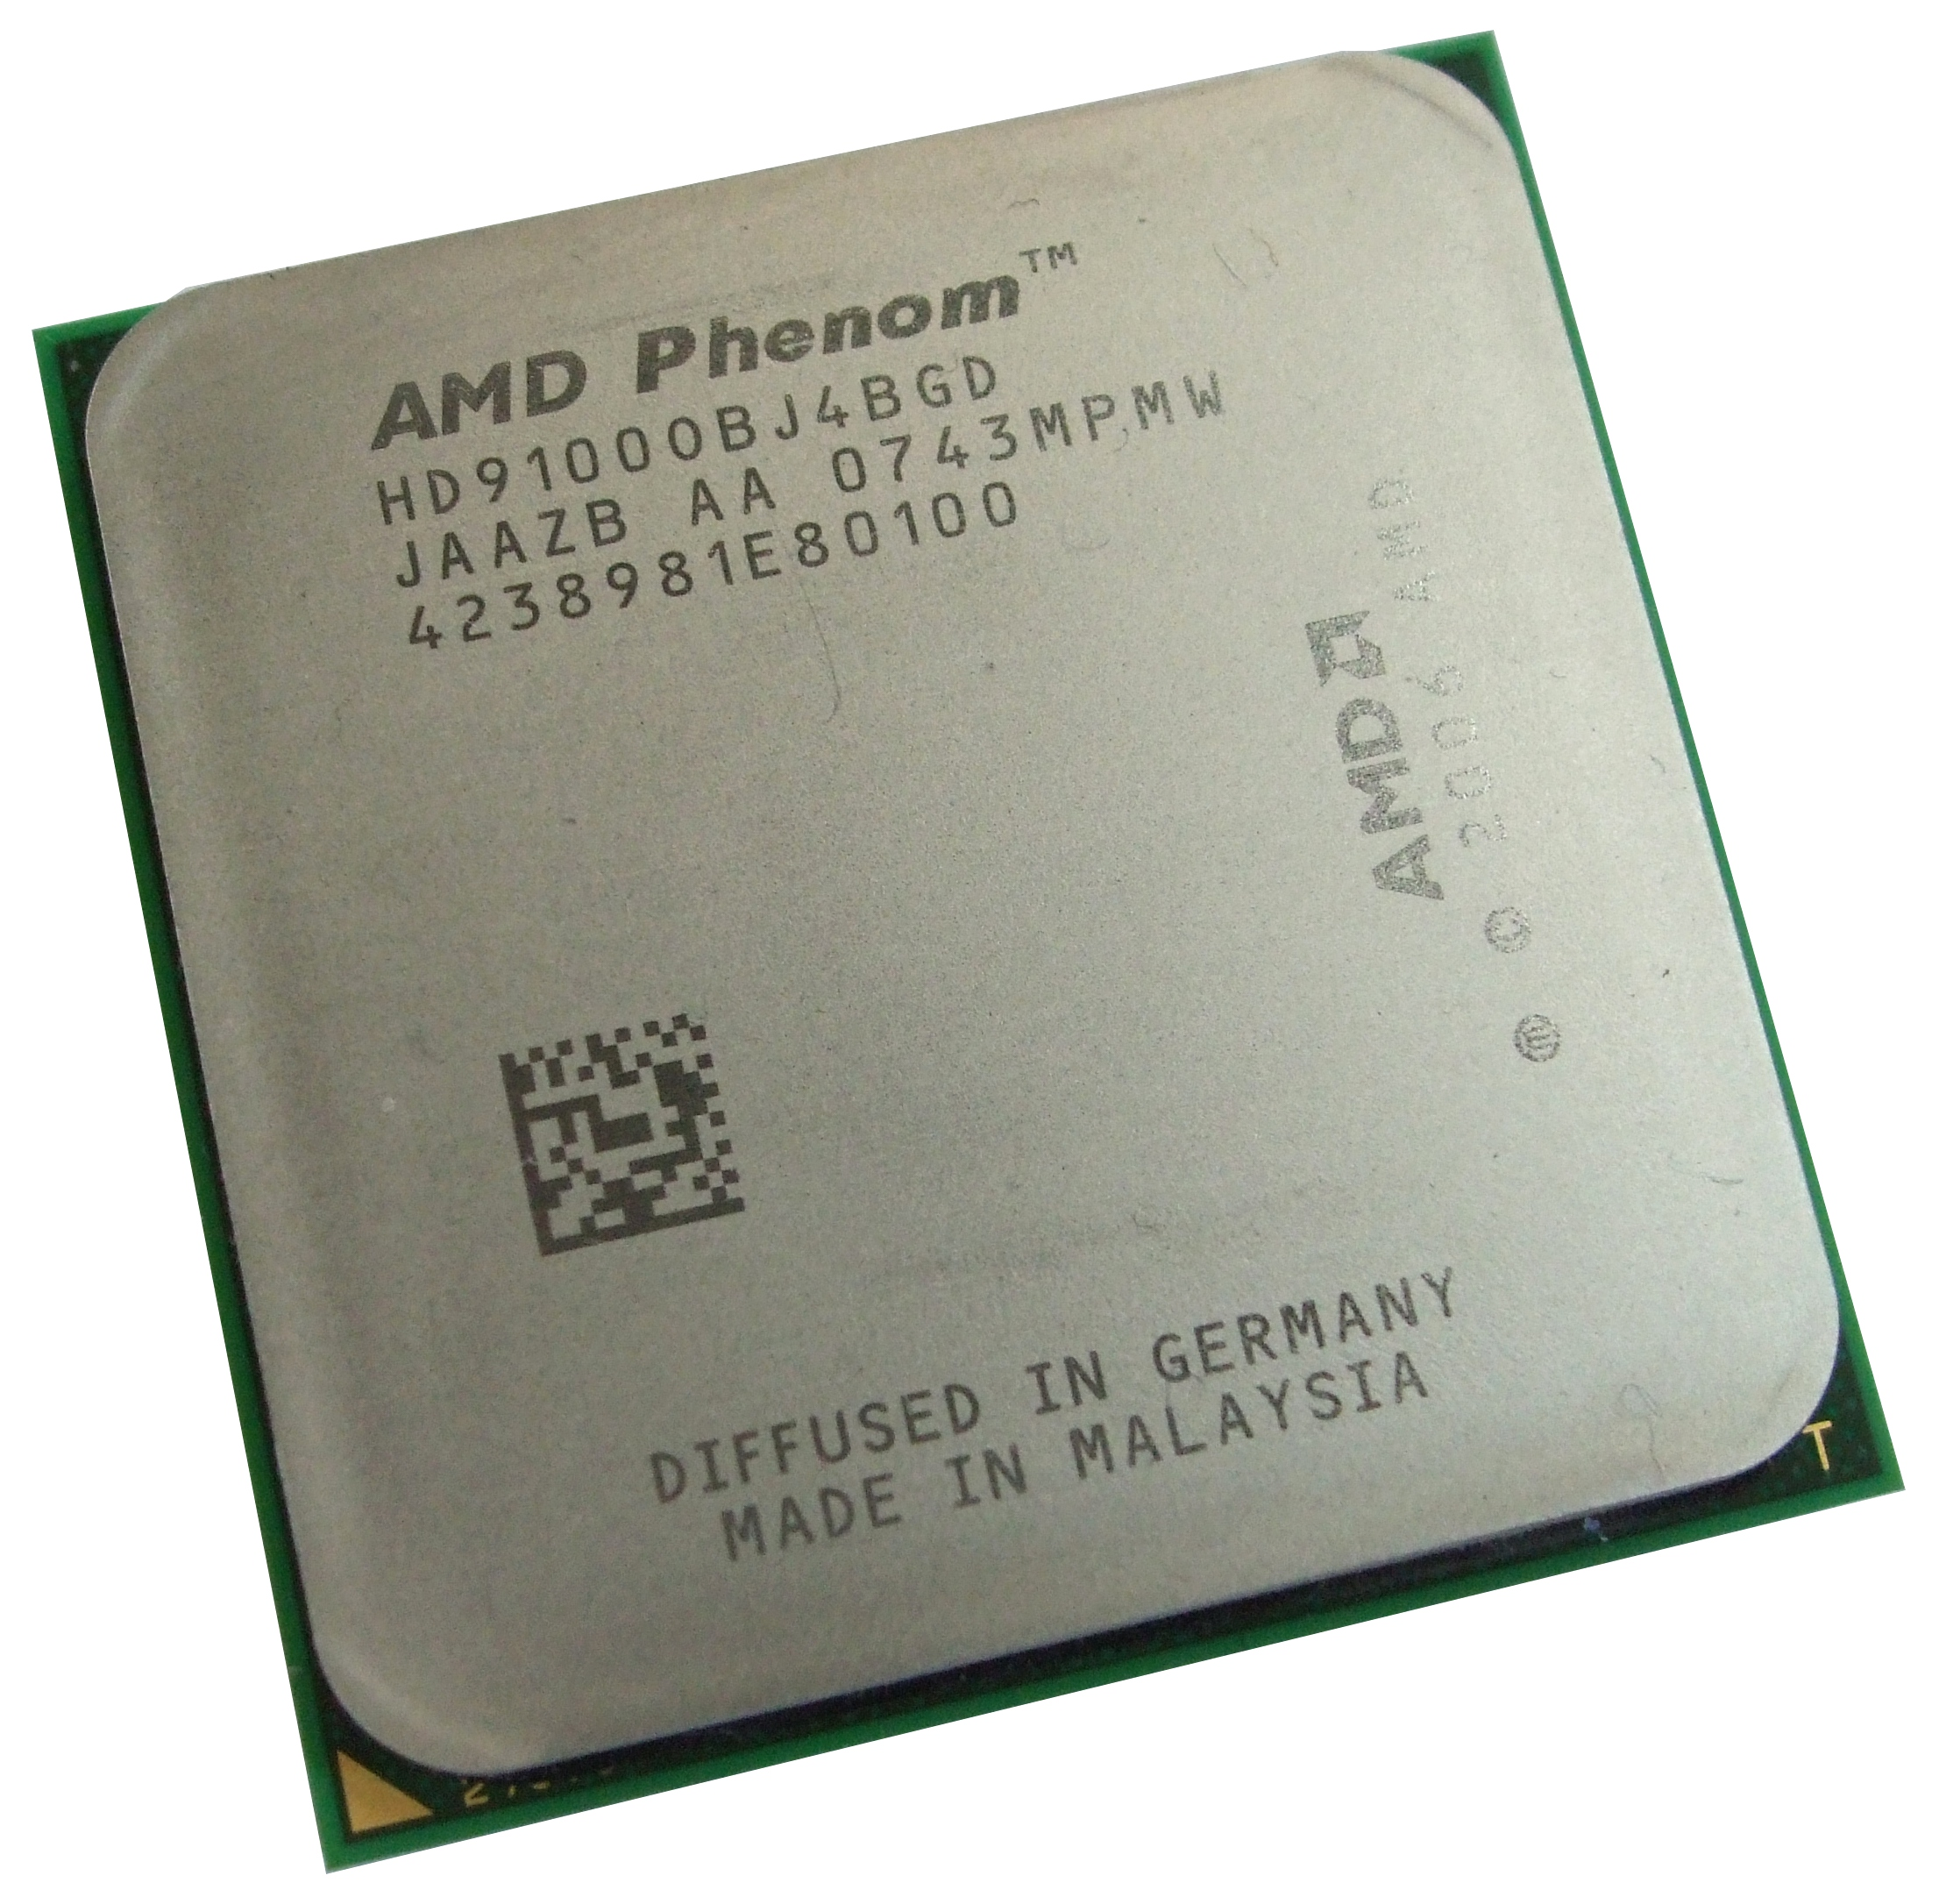 HD9100OBJ4BGD AMD 9100e Phenom X4 1.8GHz Socket AM2+ Processor - Quad Core